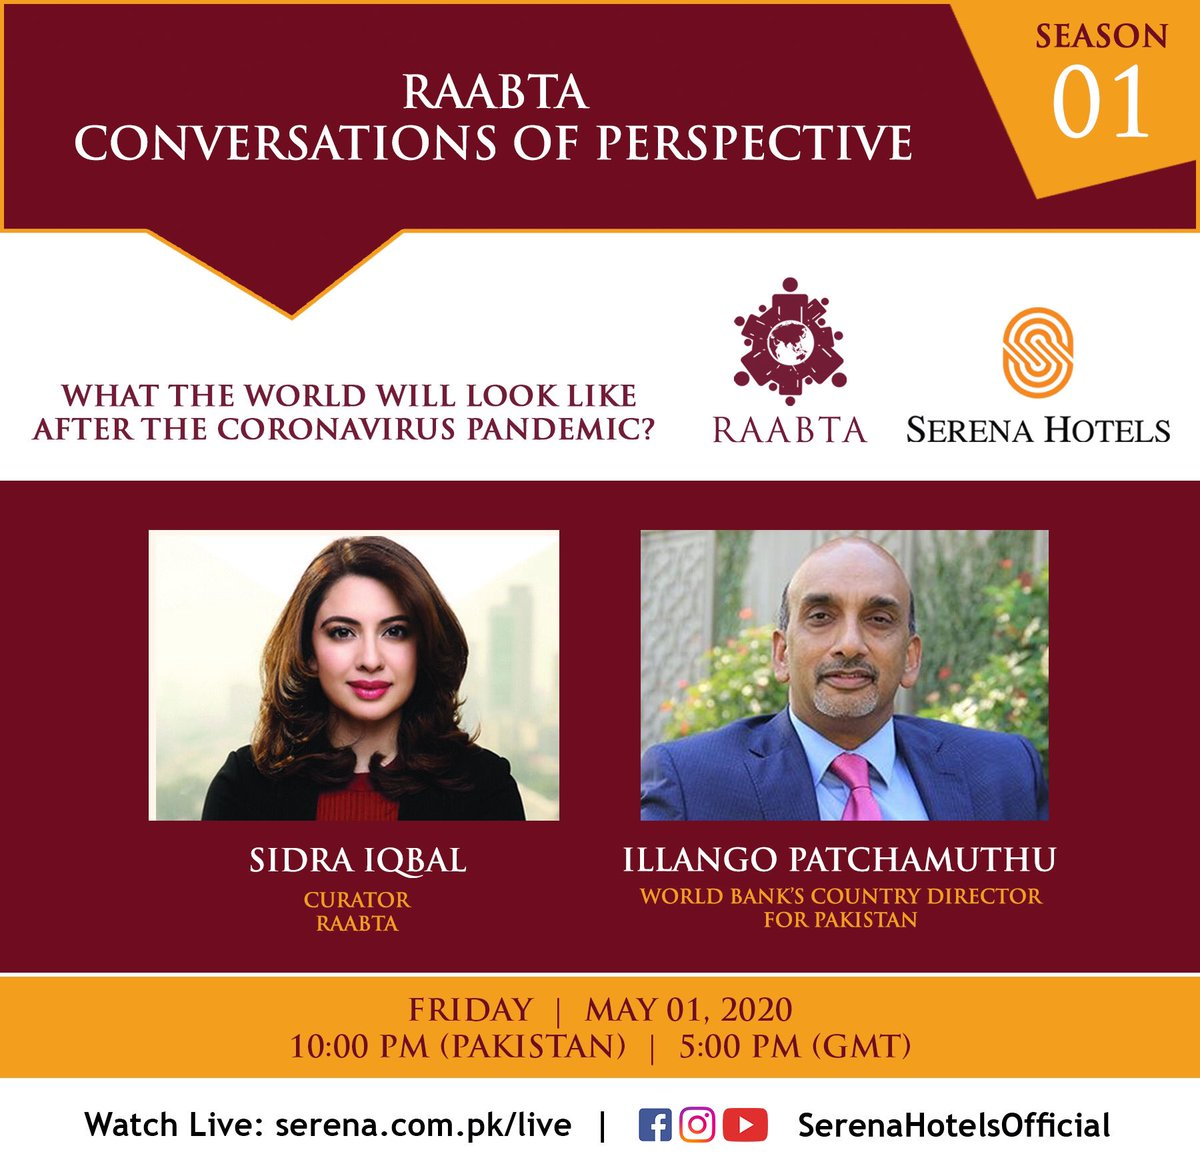 Conversations of Perspective by Raabta - a Public Diplomacy Initiative by Serena Hotels.  Sidra Iqbal, Curator Raabta talks to Illango Patchamuthu - World Bank's Country Director for Pakistan. Watch Live on Friday, 01 May at 10:00 pm (Pakistan Time). #WorldBank #Raabta https://t.co/lcNSkoALL0